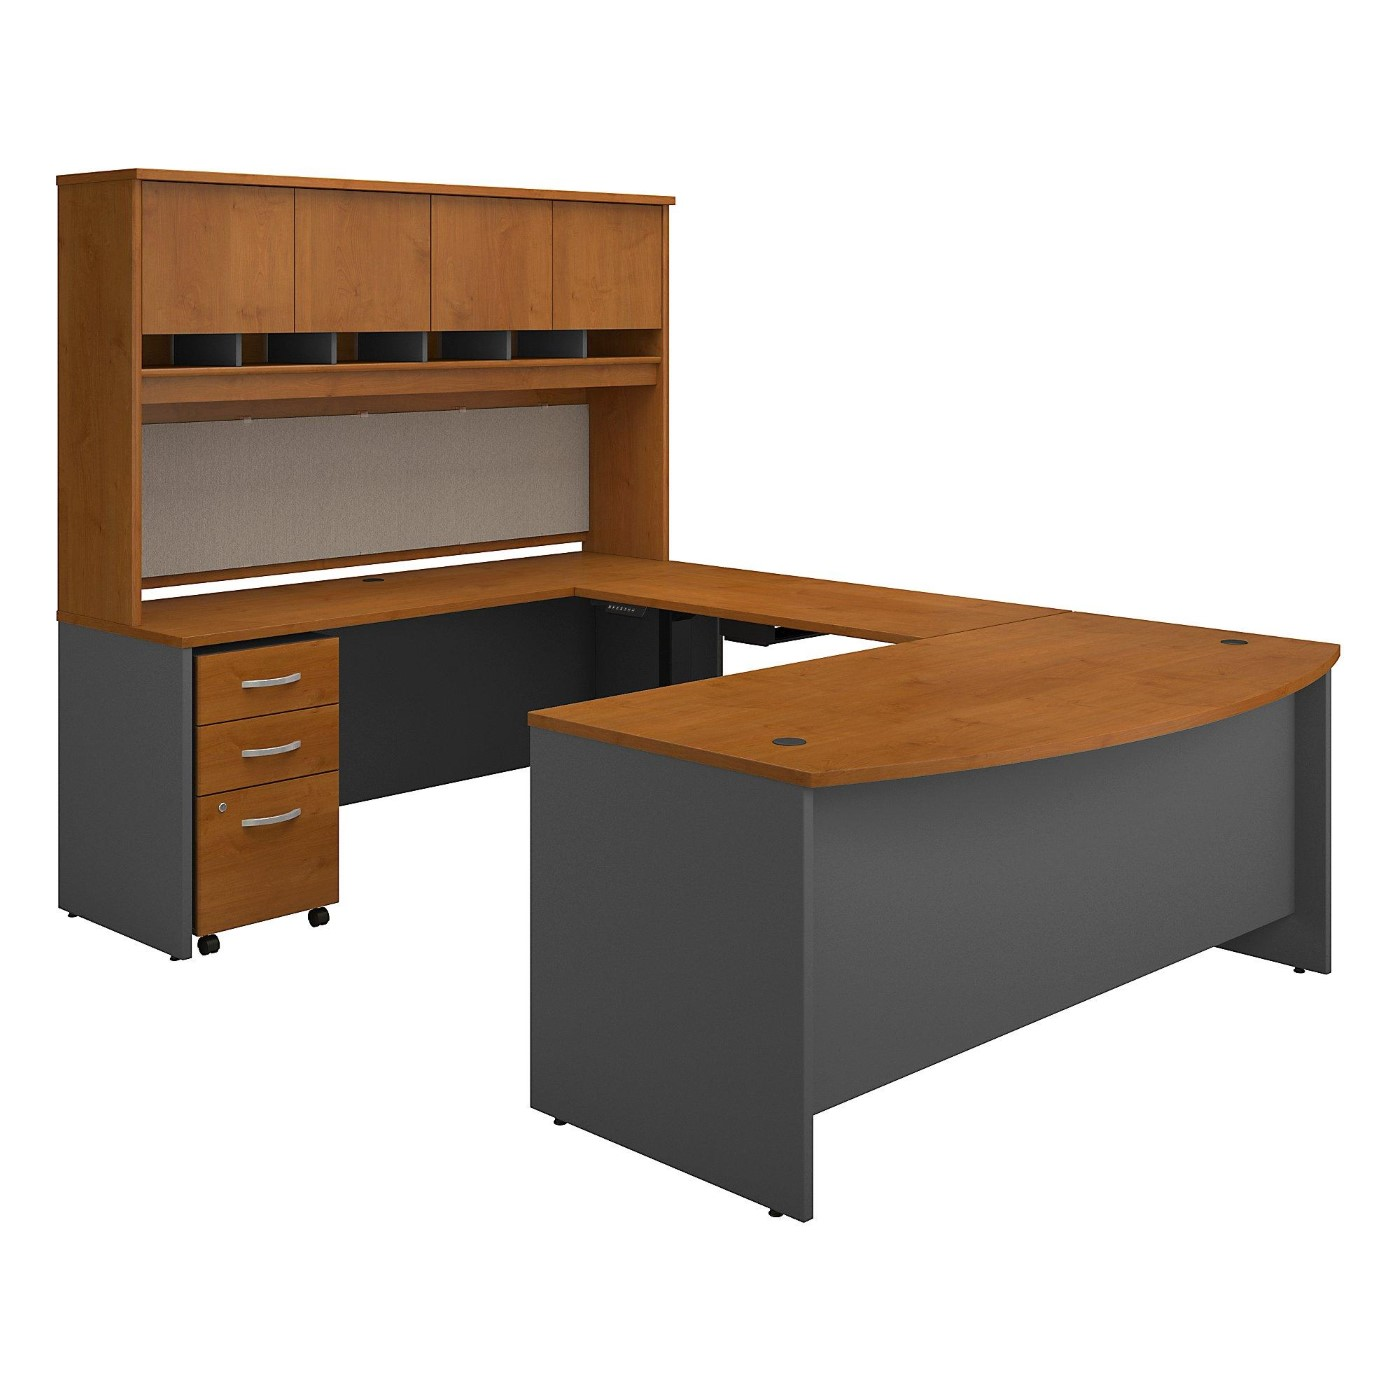 BUSH BUSINESS FURNITURE SERIES C 72W U SHAPED DESK WITH HEIGHT ADJUSTABLE BRIDGE, HUTCH AND STORAGE. FREE SHIPPING  VIDEO BELOW.